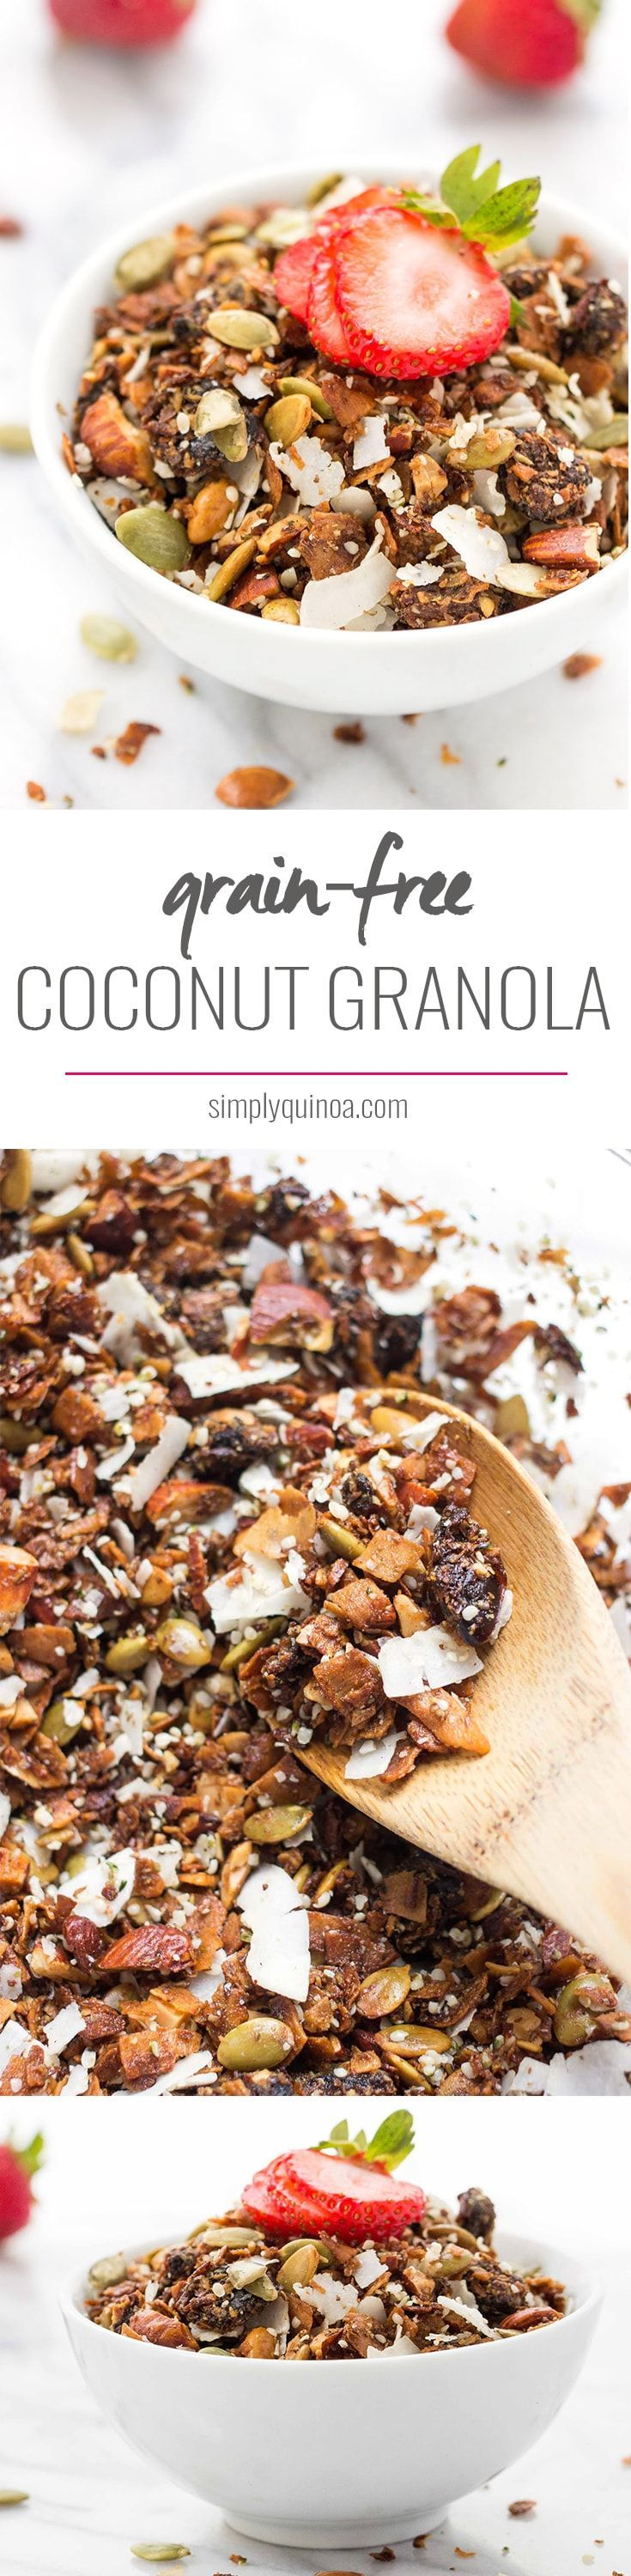 The PERFECT grain-free granola >> with coconut, almonds and chewy medjool dates! All clean eating ingredients are used for this healthy breakfast recipe. Pin now to make later!